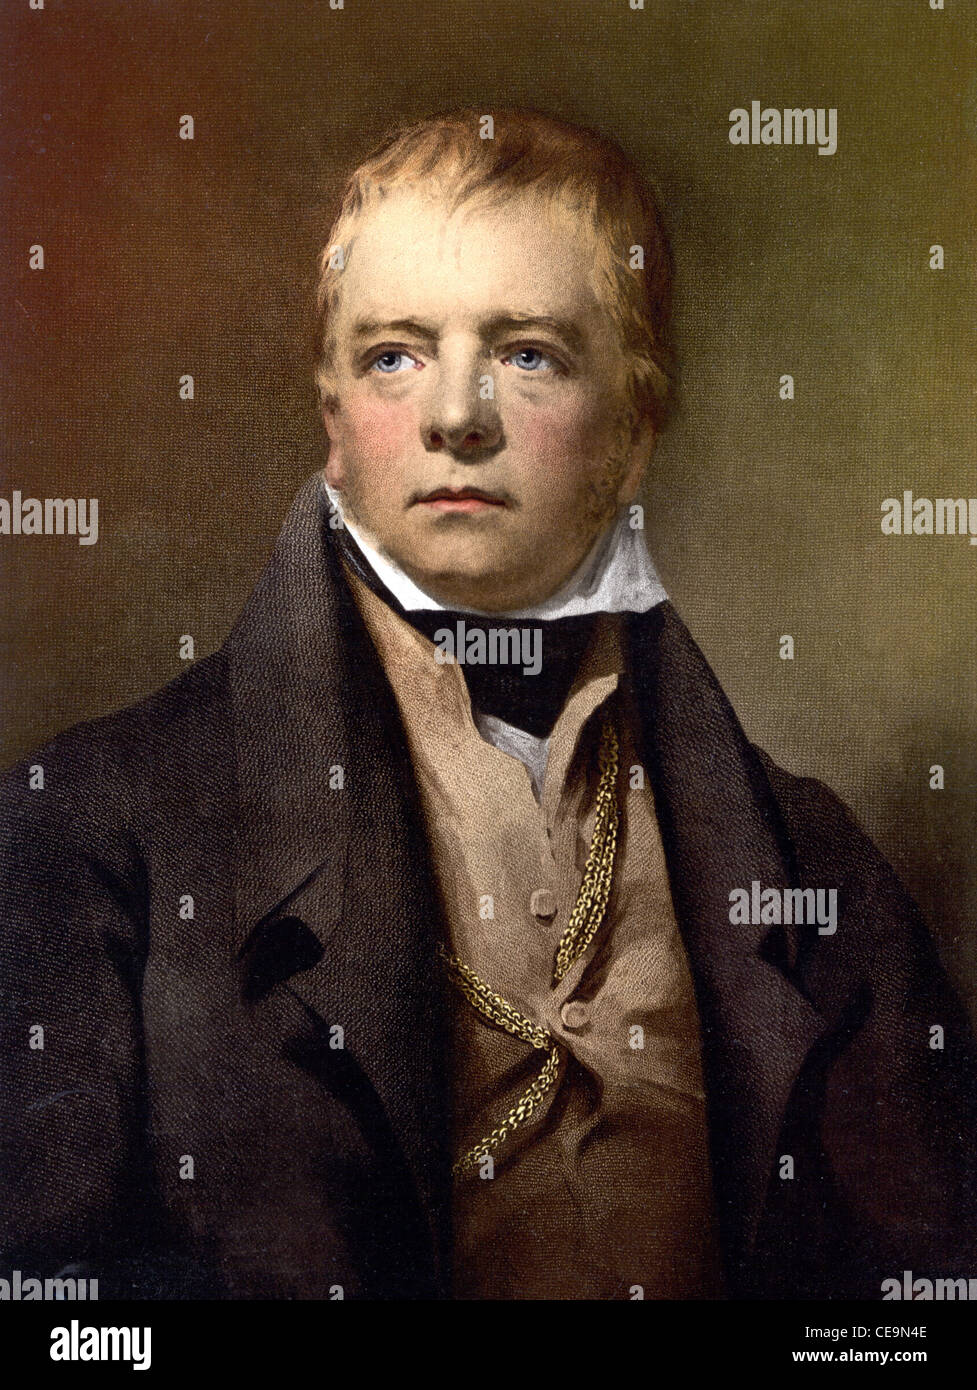 Sir Walter Scott, 1st Baronet, a Scottish historical novelist, playwright, and poet. - Stock Image